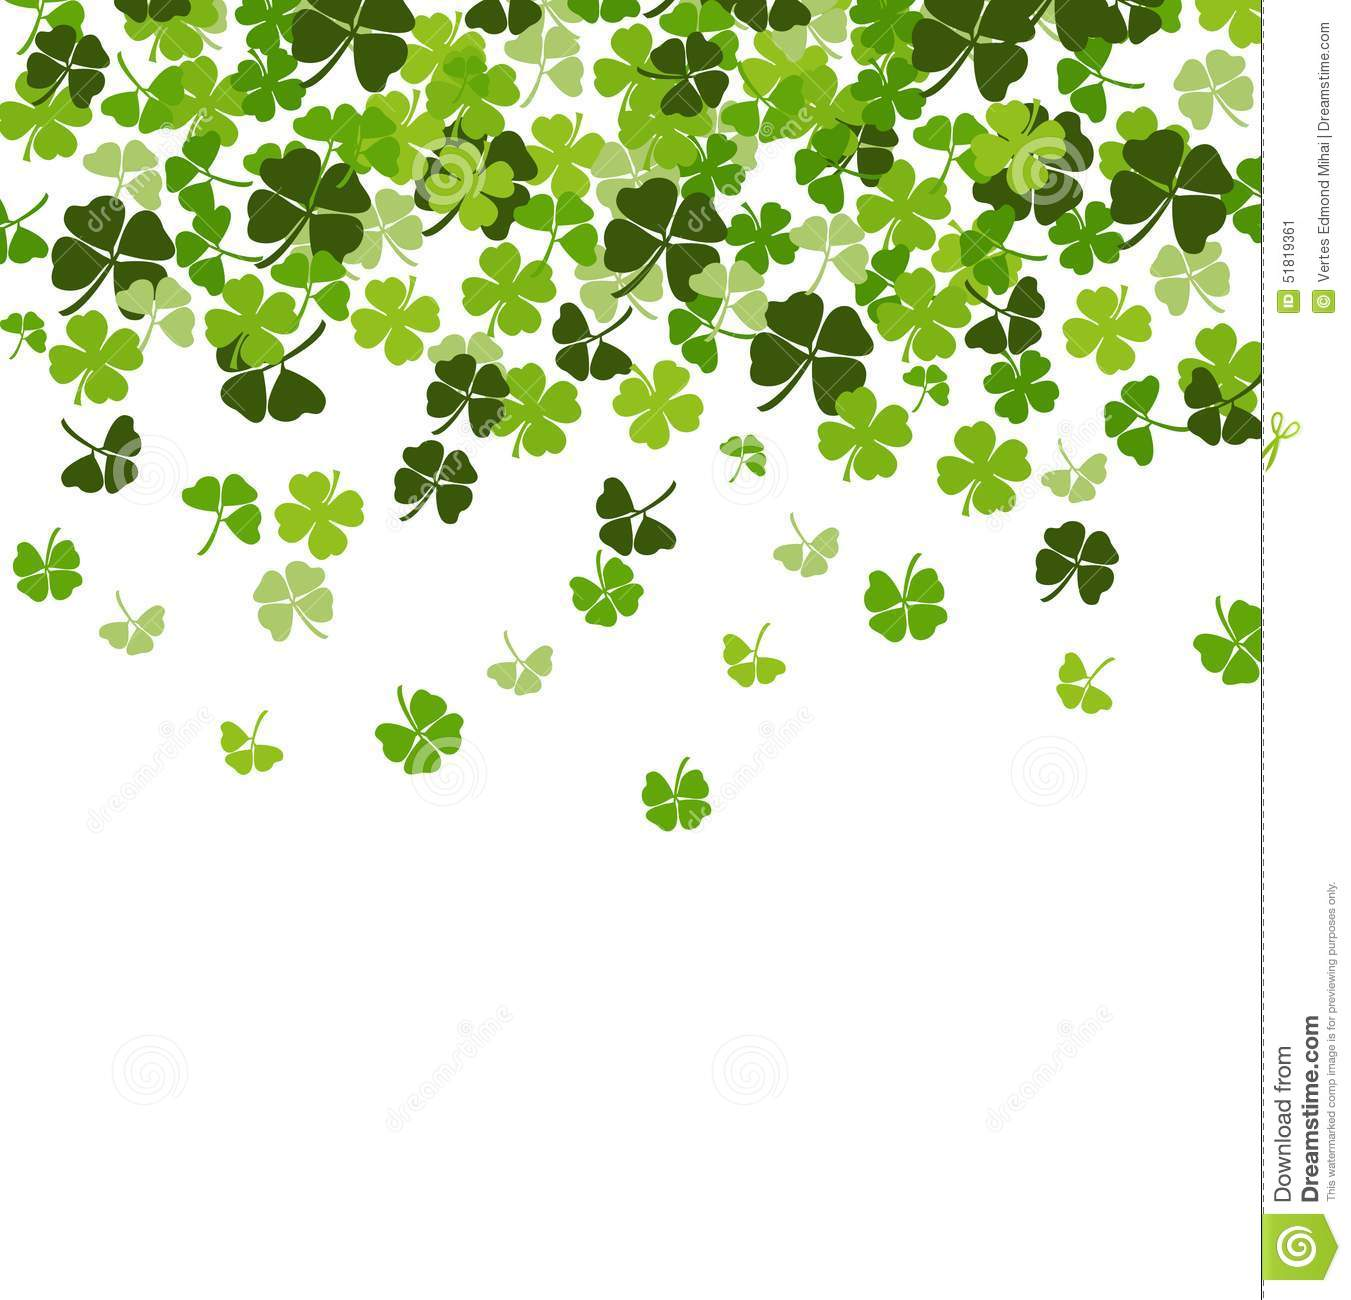 hight resolution of 1351x1300 background shamrock clipart explore pictures